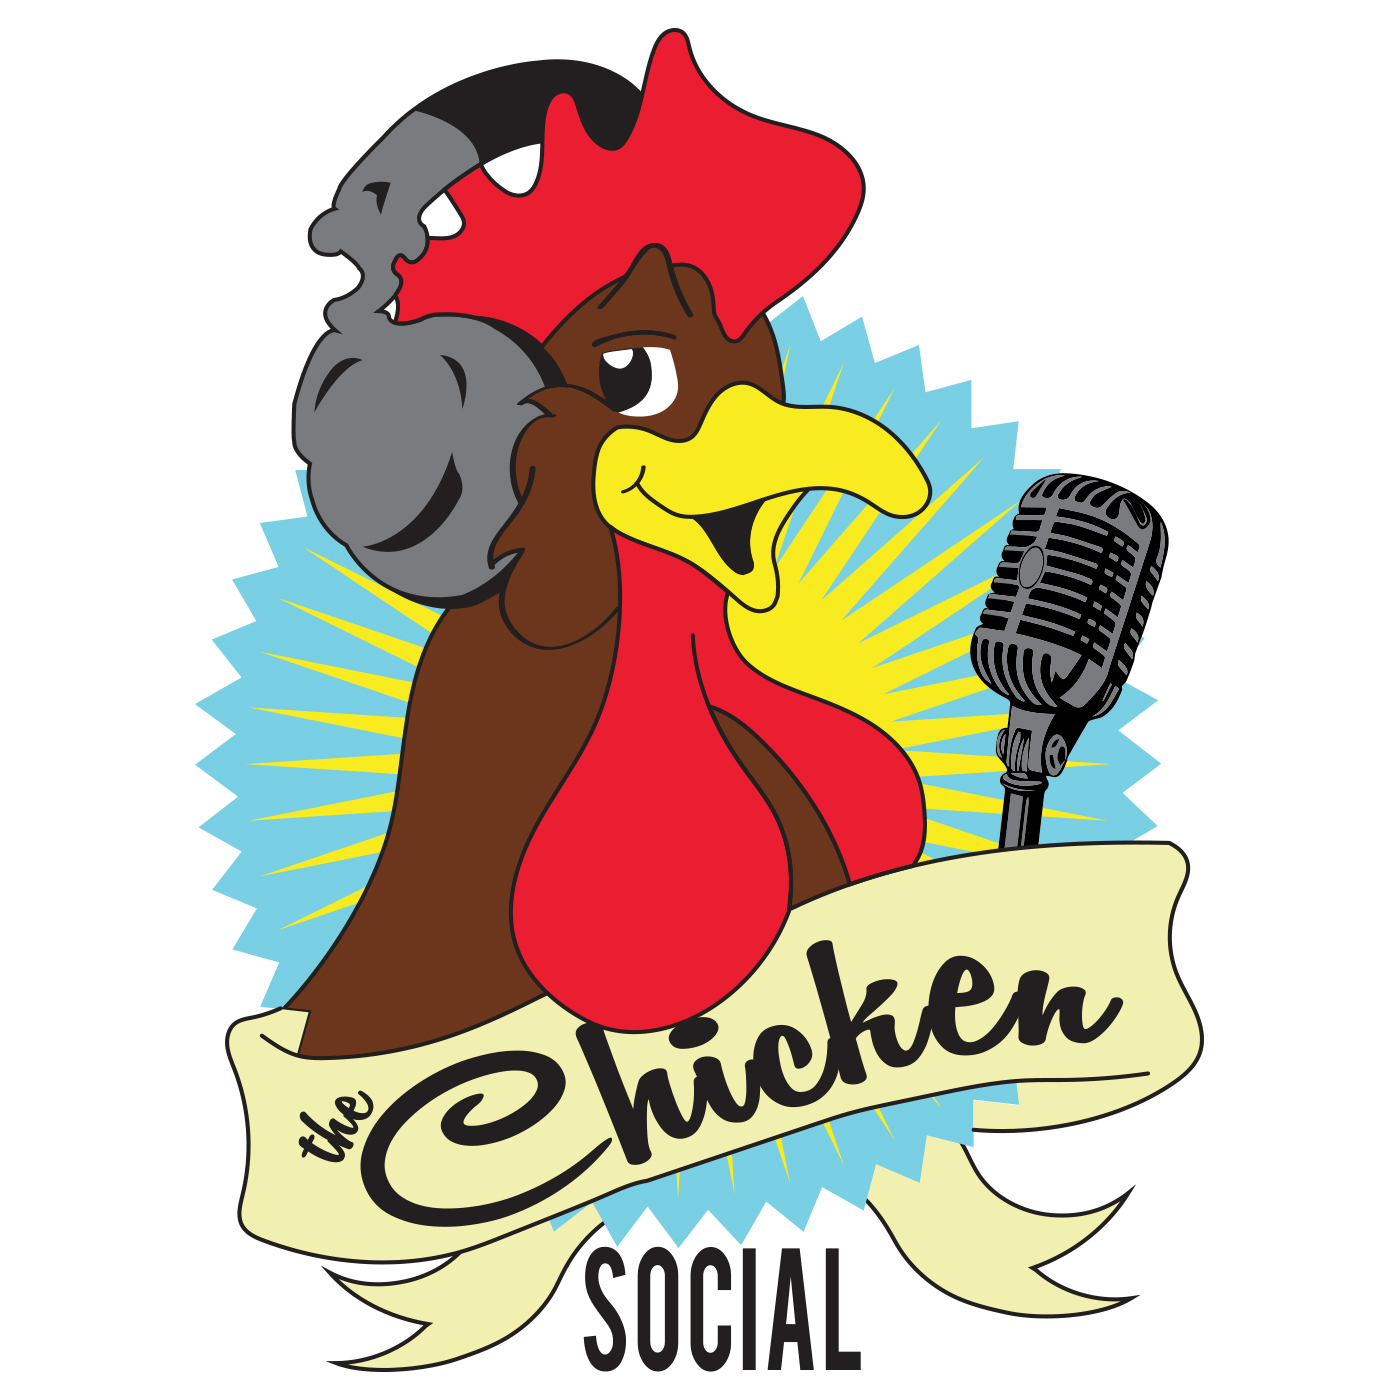 The Chicken Social